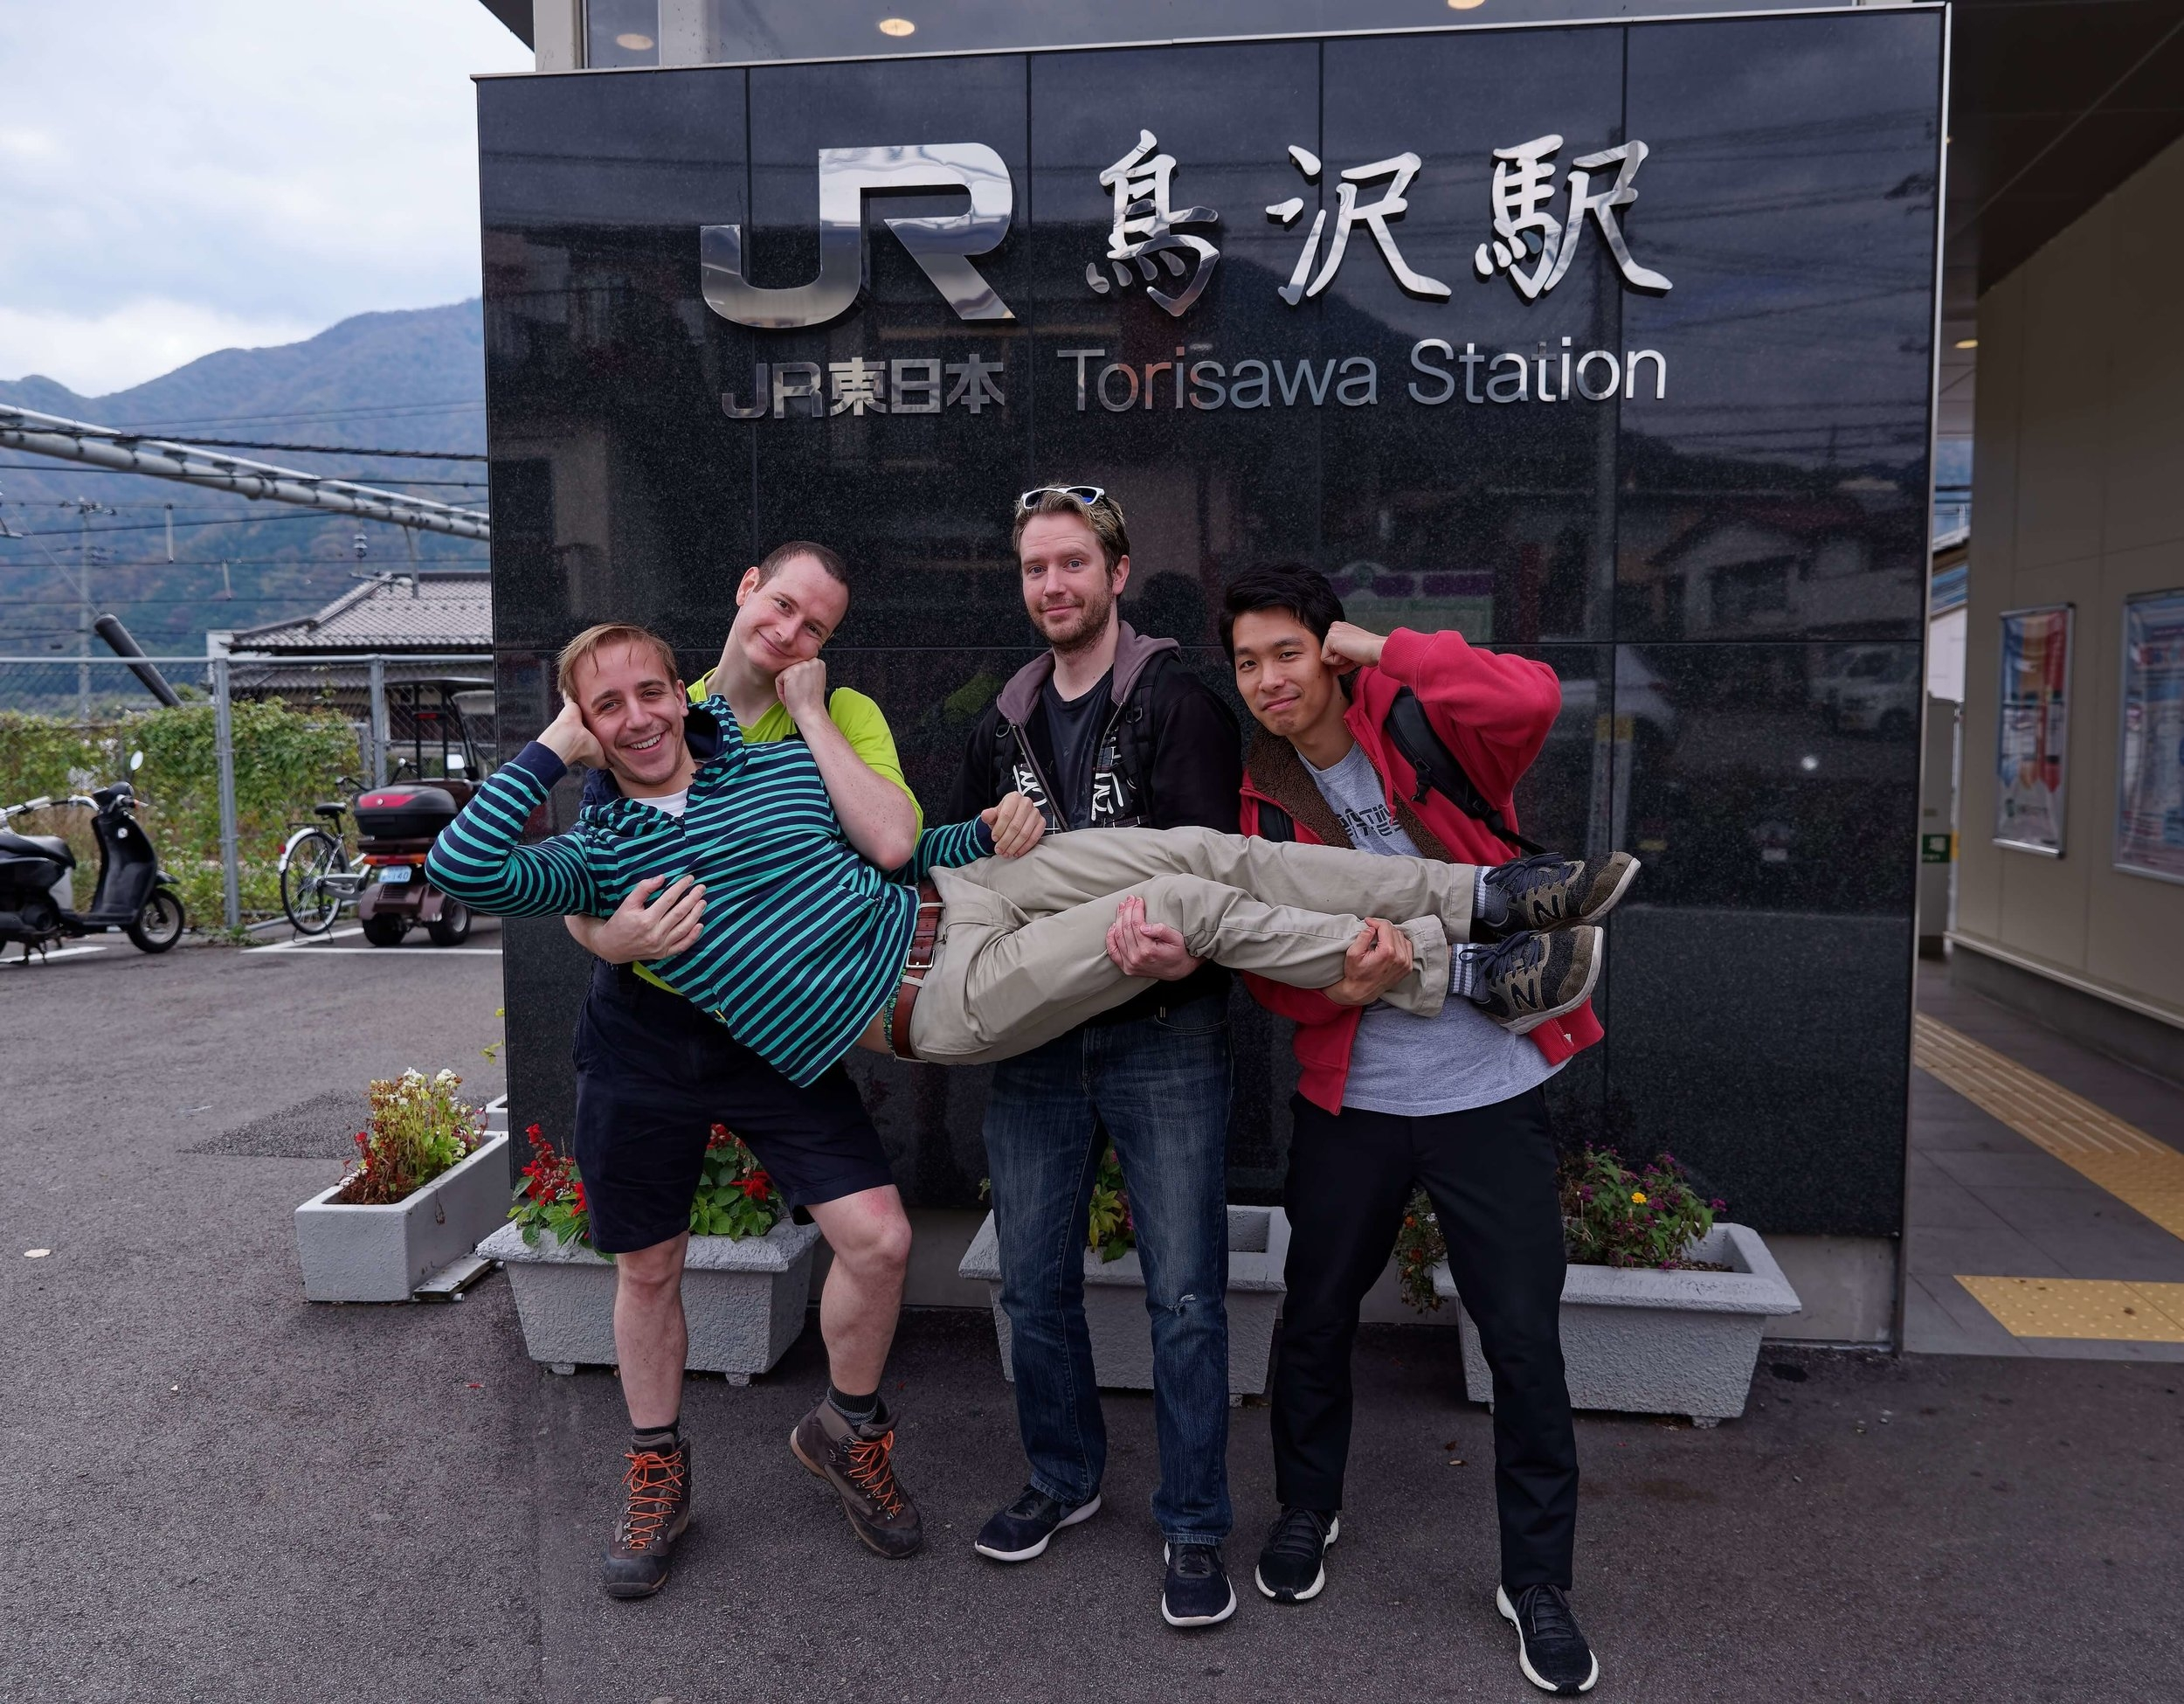 Cheesy Pre Hike Group photo at Torisawa Station